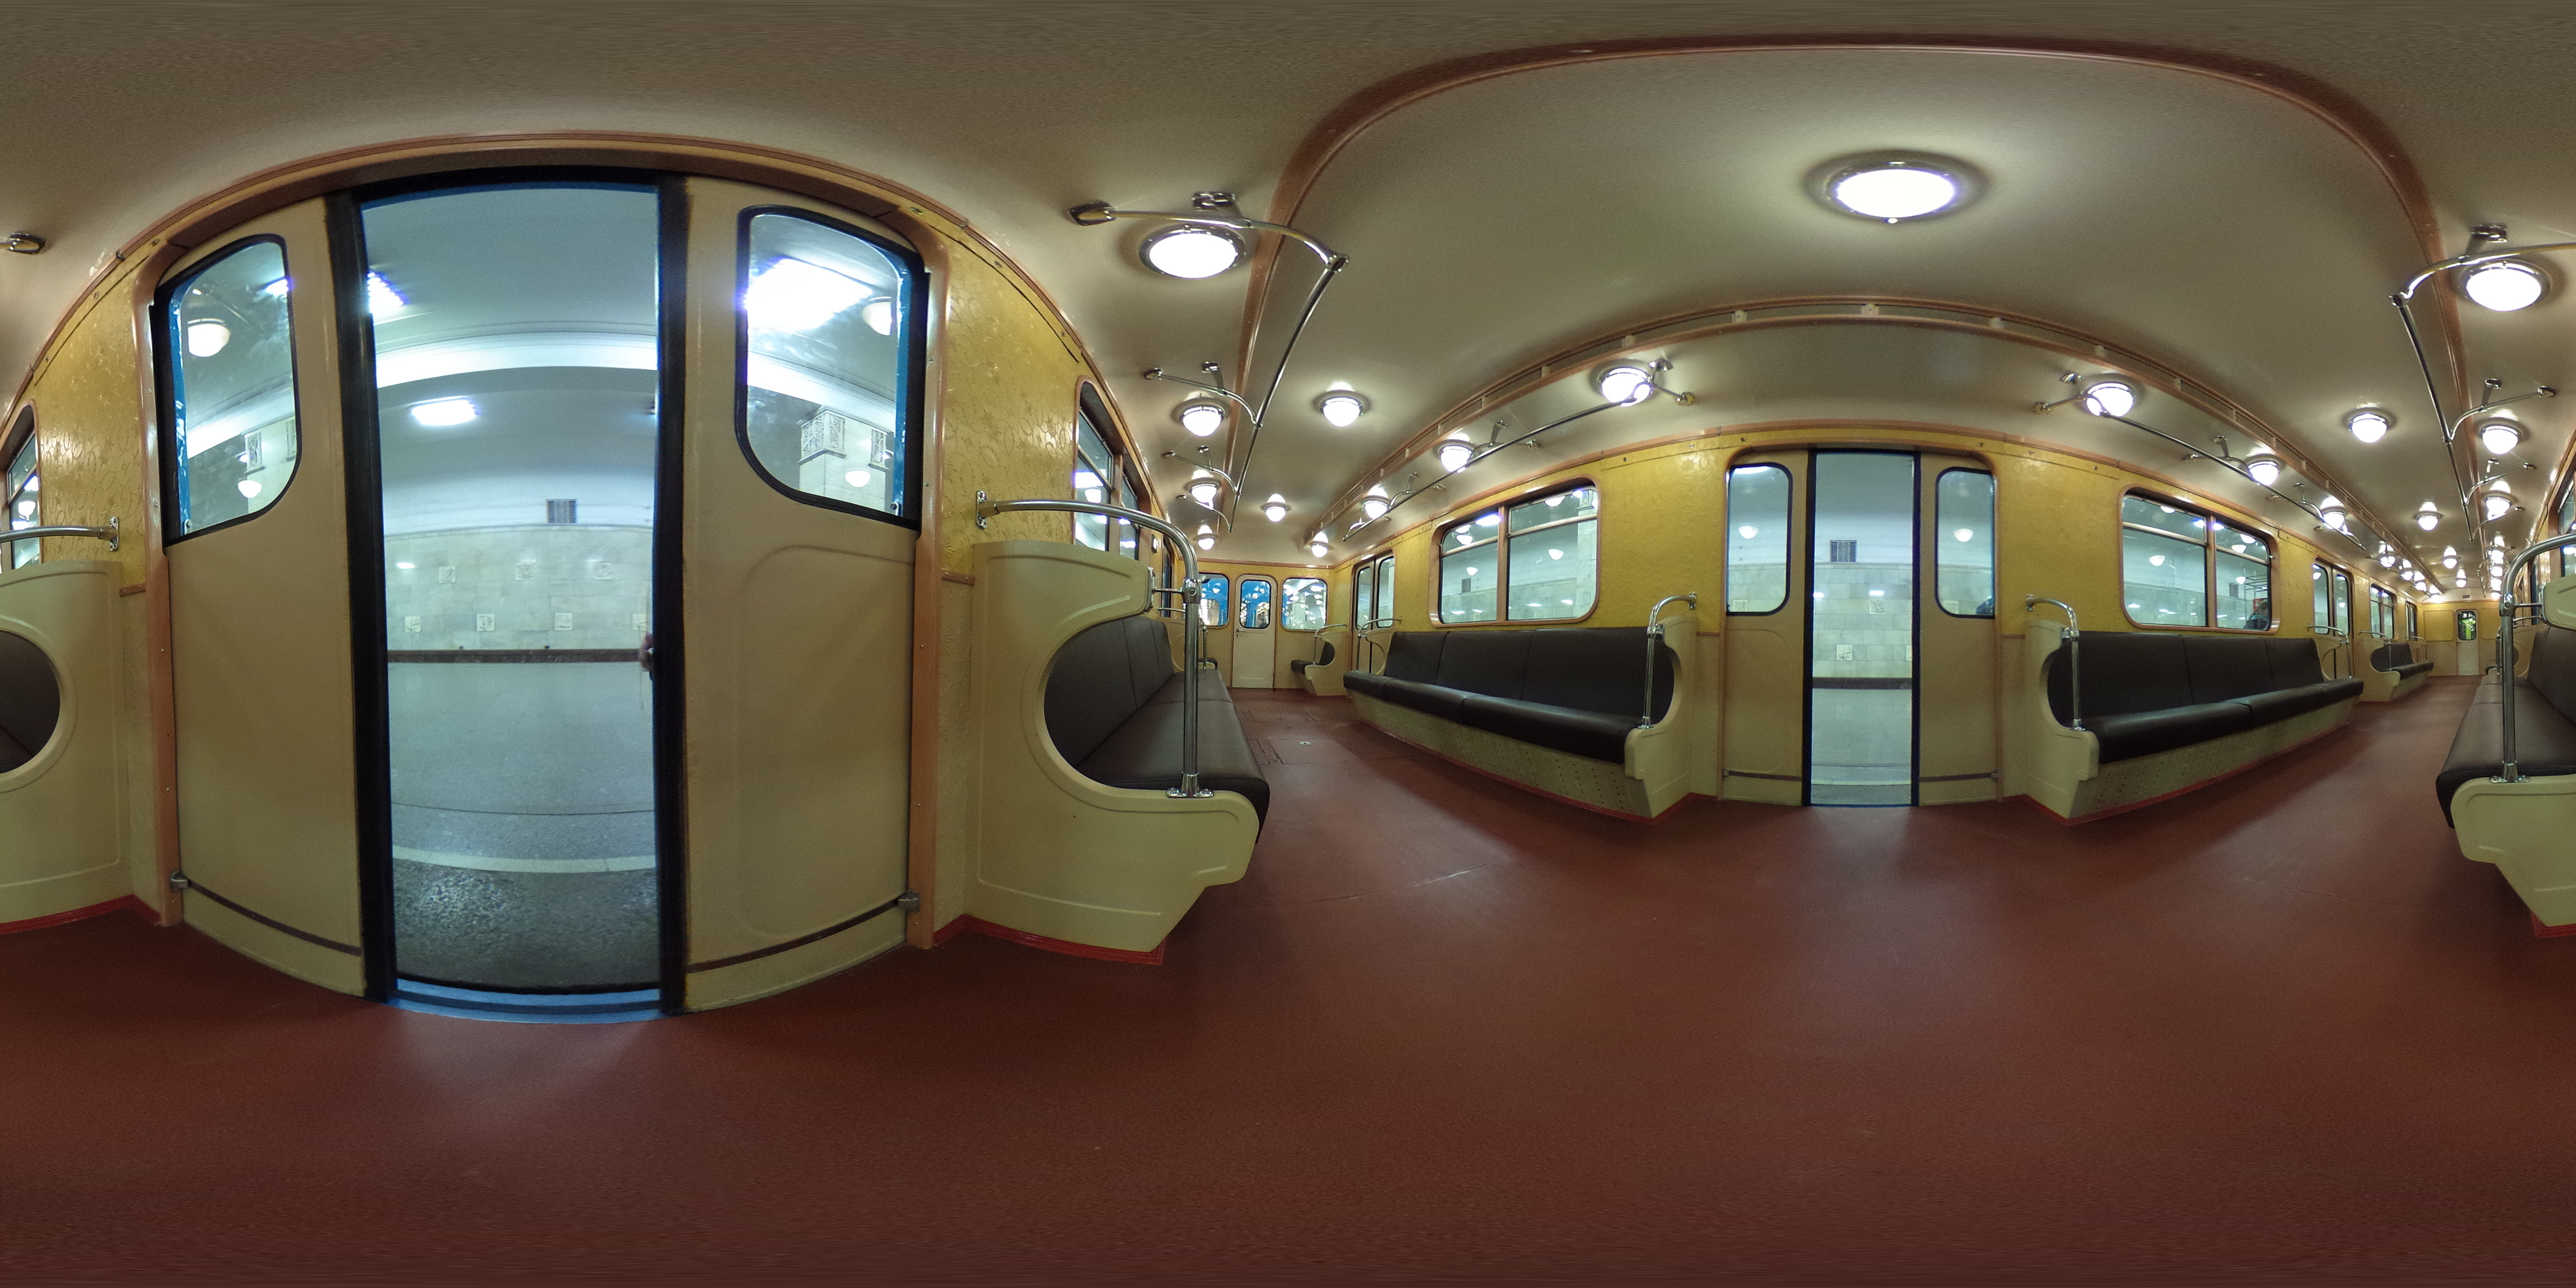 file moscow metro e 3605 museum metro car interior 26928469260 jpg wikimedia commons. Black Bedroom Furniture Sets. Home Design Ideas